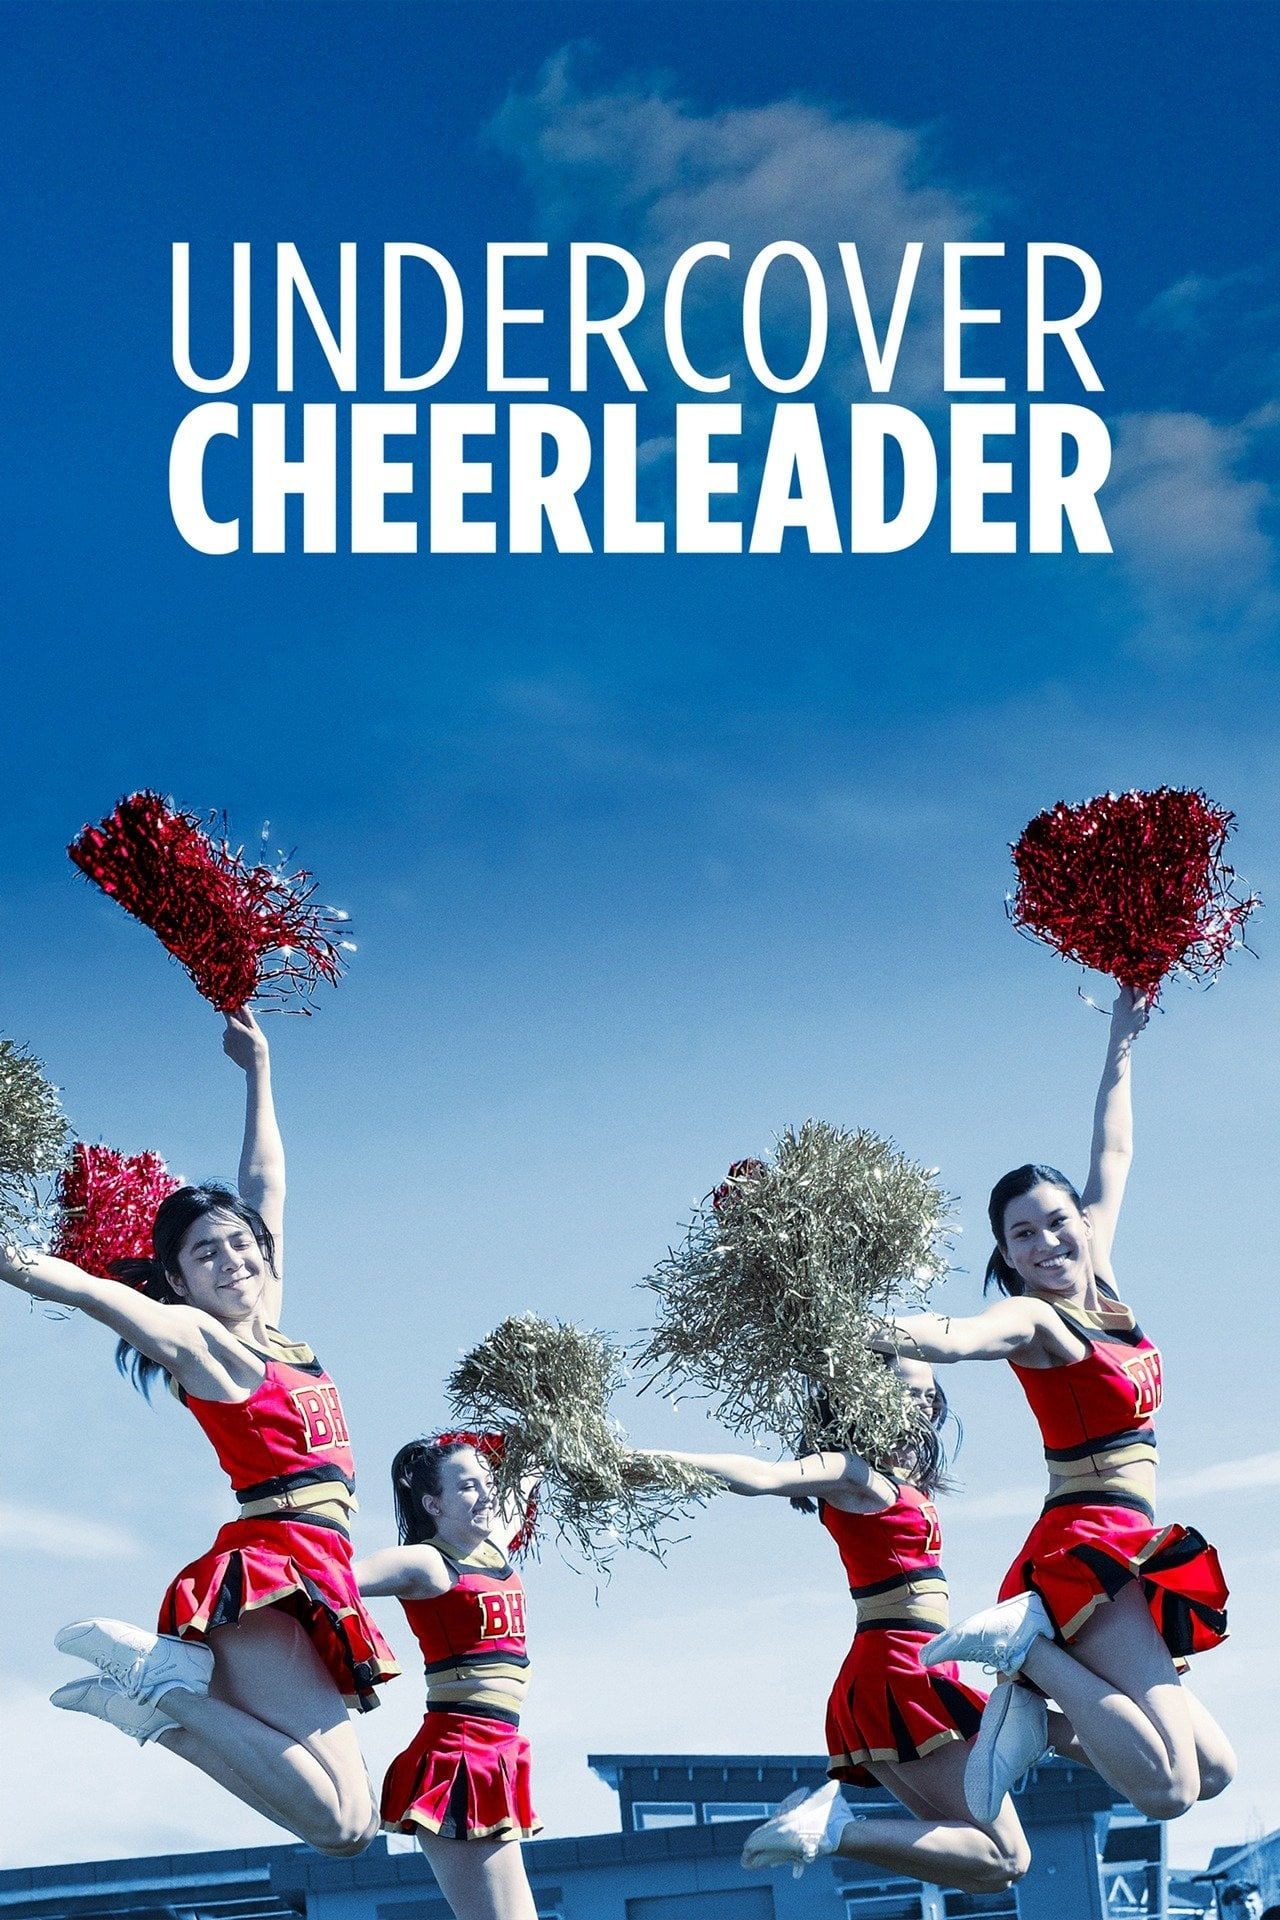 thumb Undercover Cheerleader